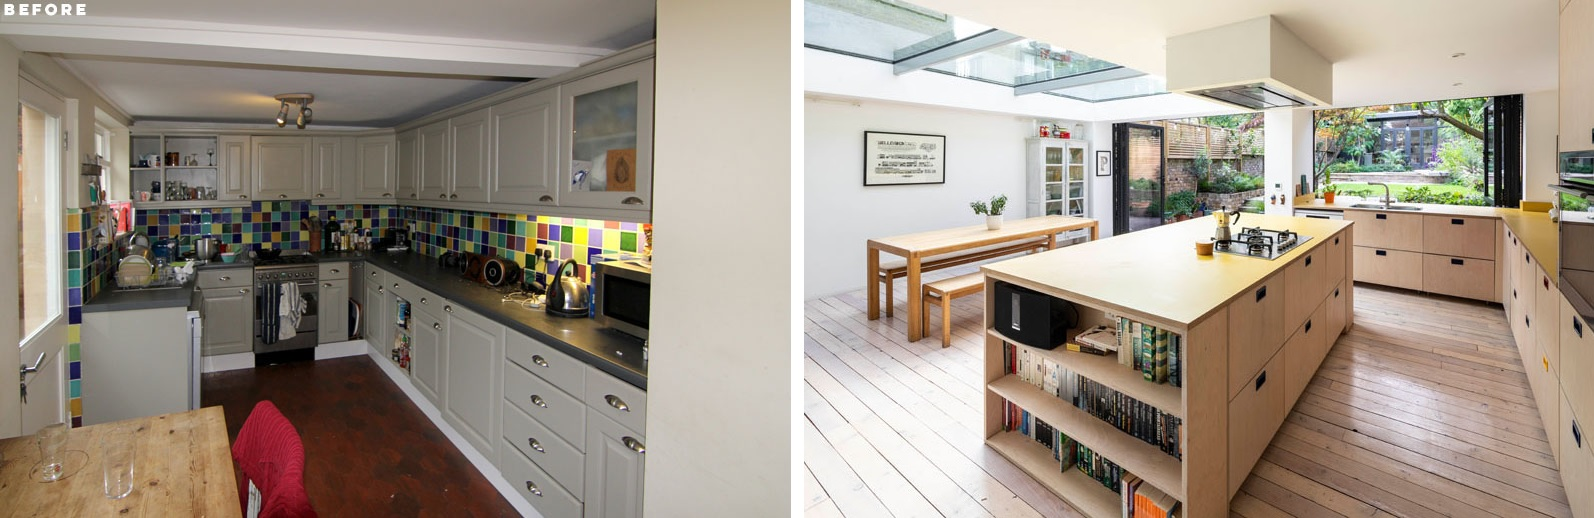 This is a comparison of the before and after kitchen designs, with an emphasis on spaciousness